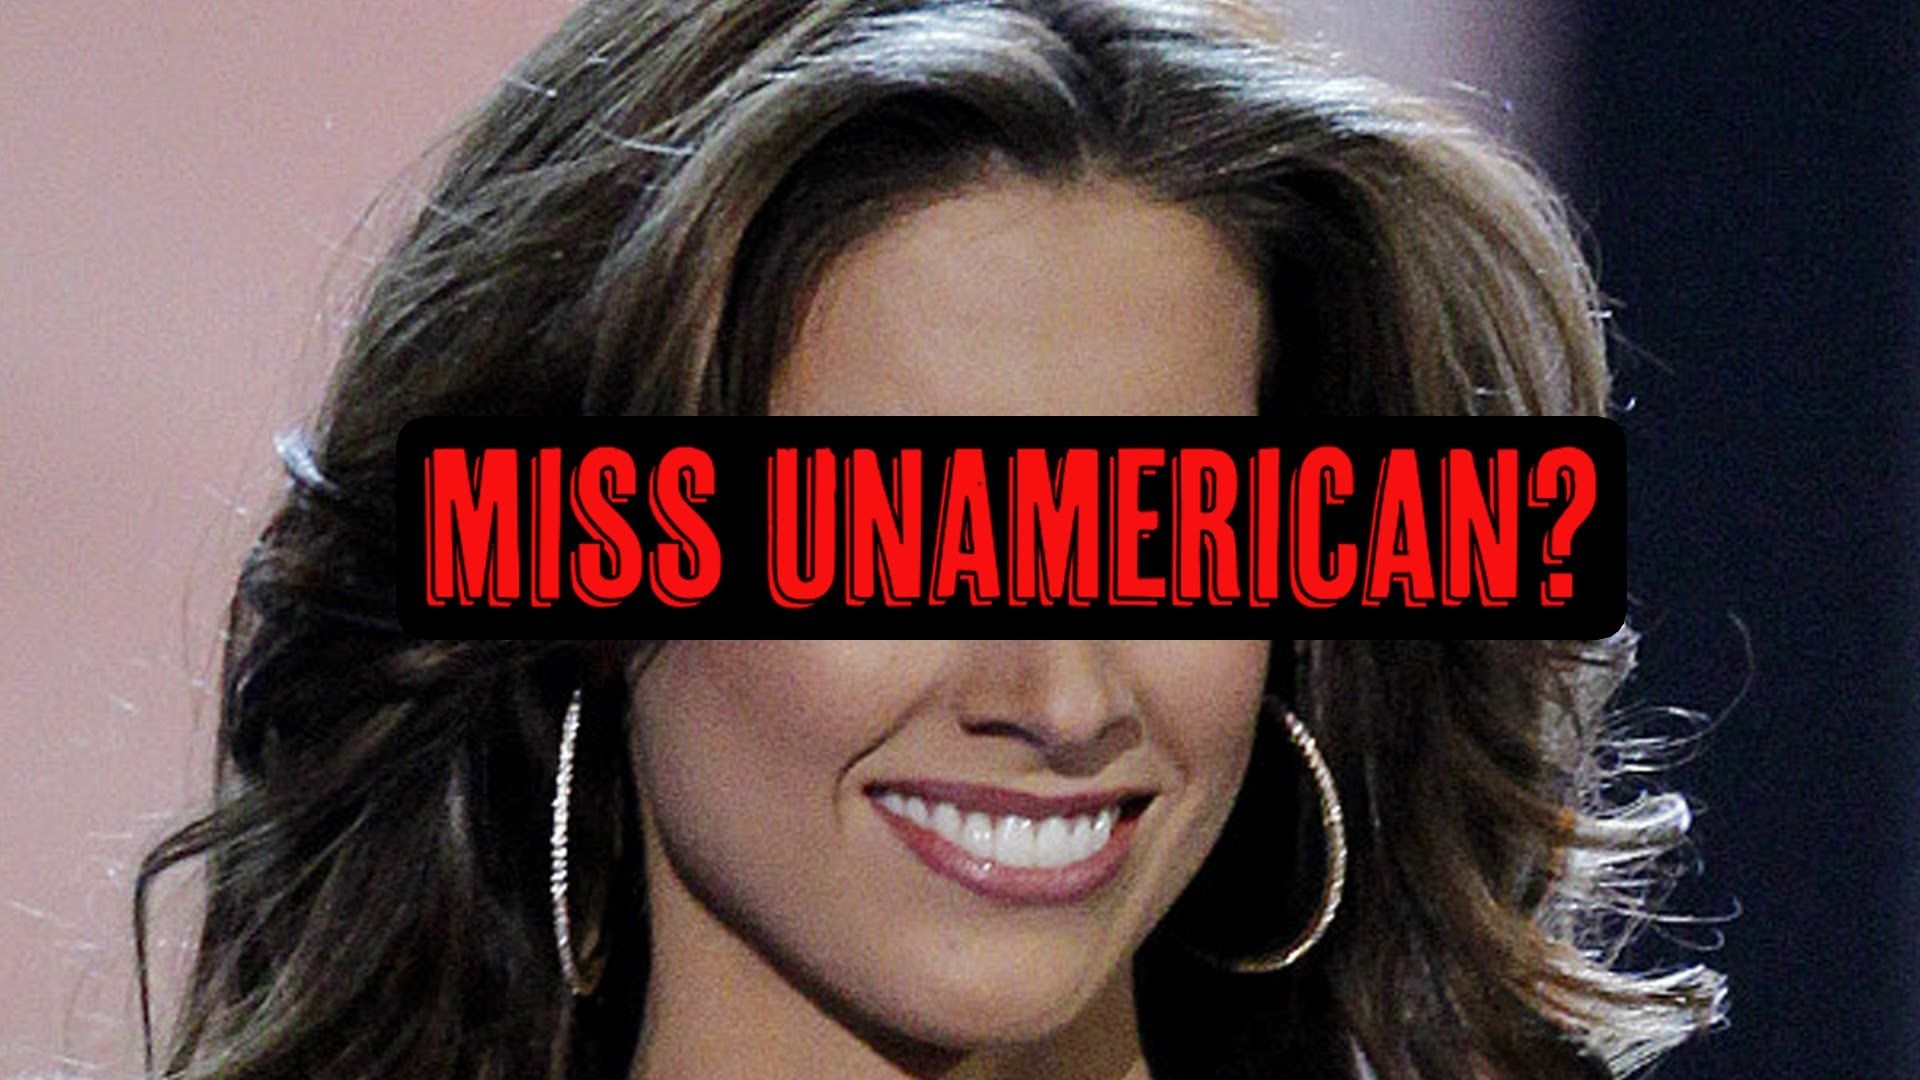 Most Awkward Beauty Pageant Answers | Miss America FAILS